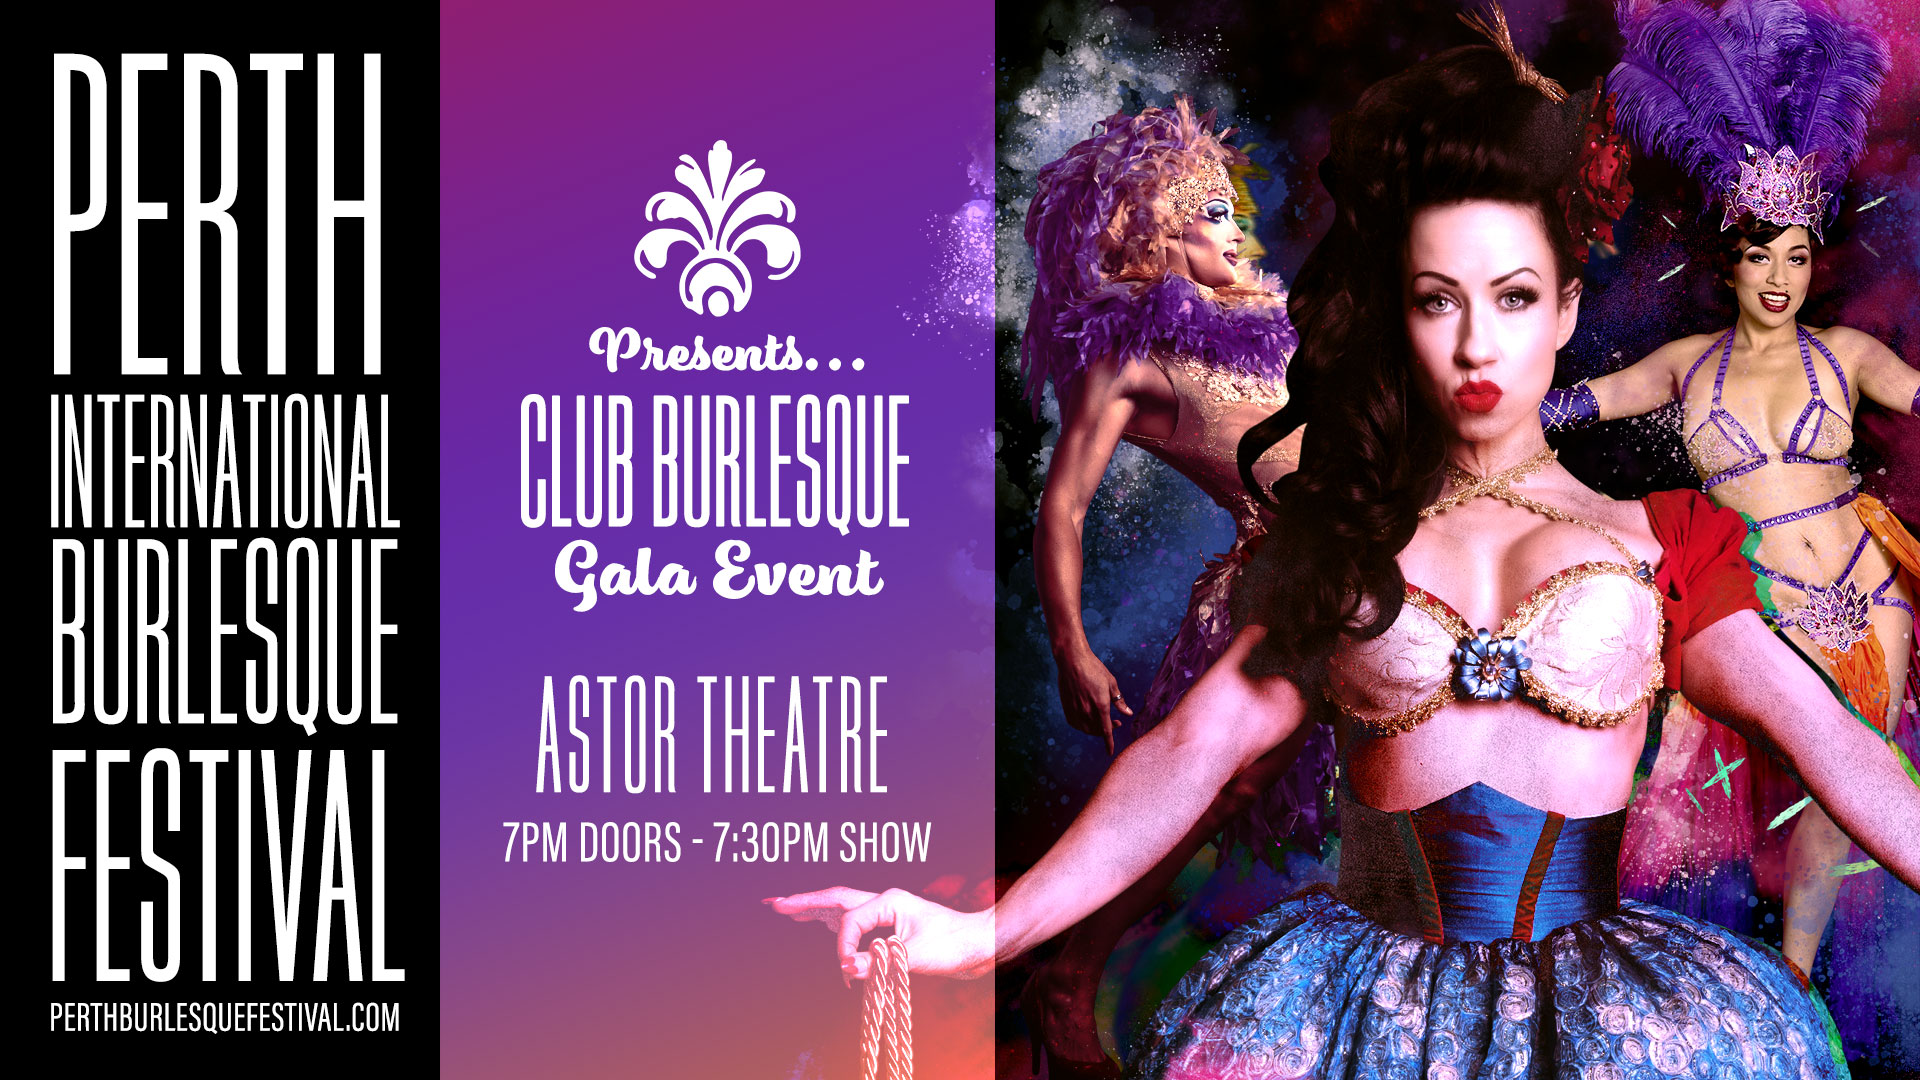 Gala Event: Club Burlesque